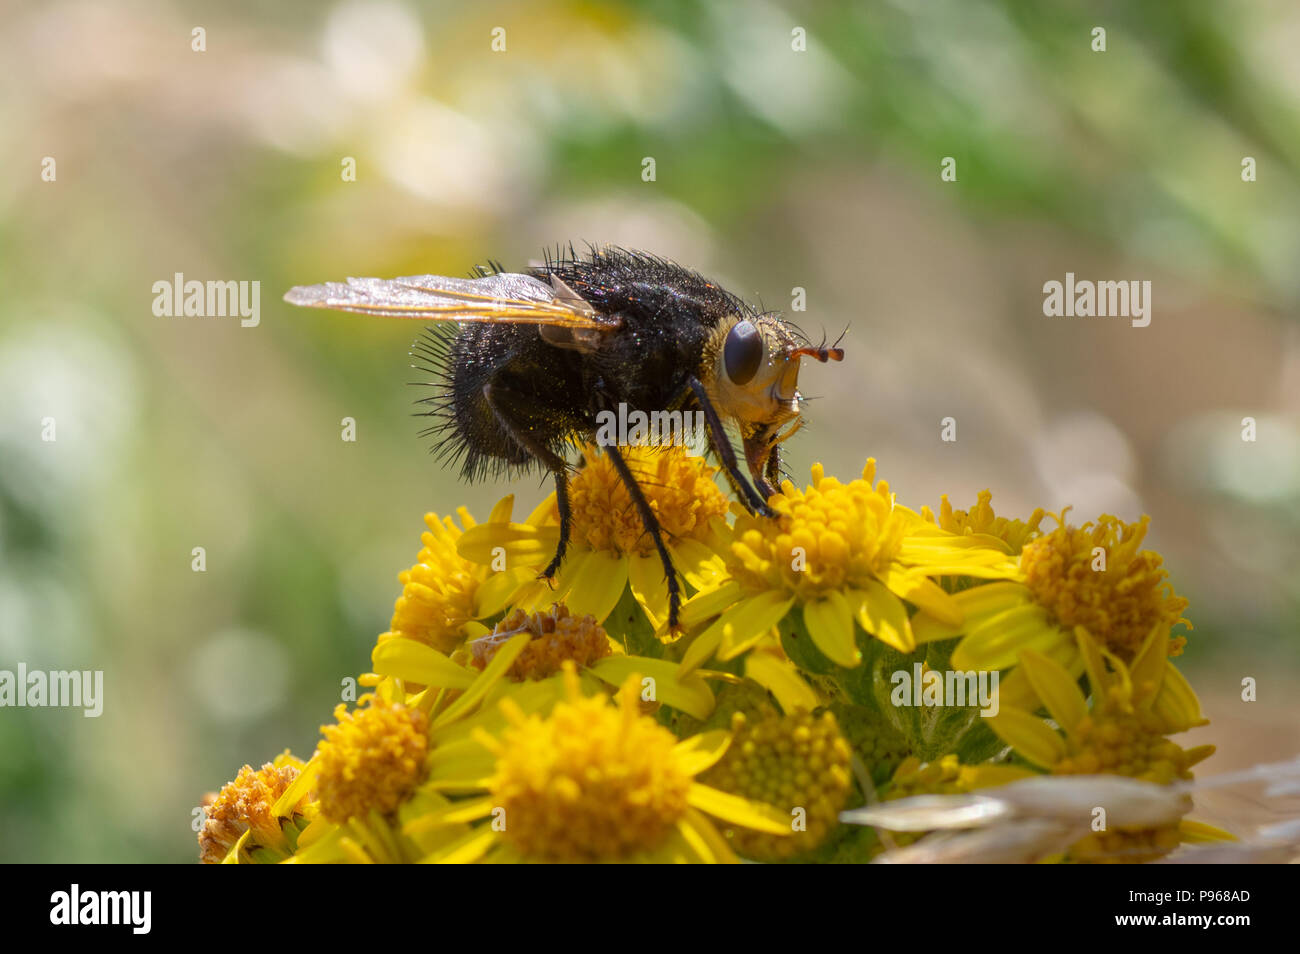 Tachina grossa fly nectaring. The largest European tachinid, in the family Tachinidae, with hairy black thorax and abdomen Stock Photo